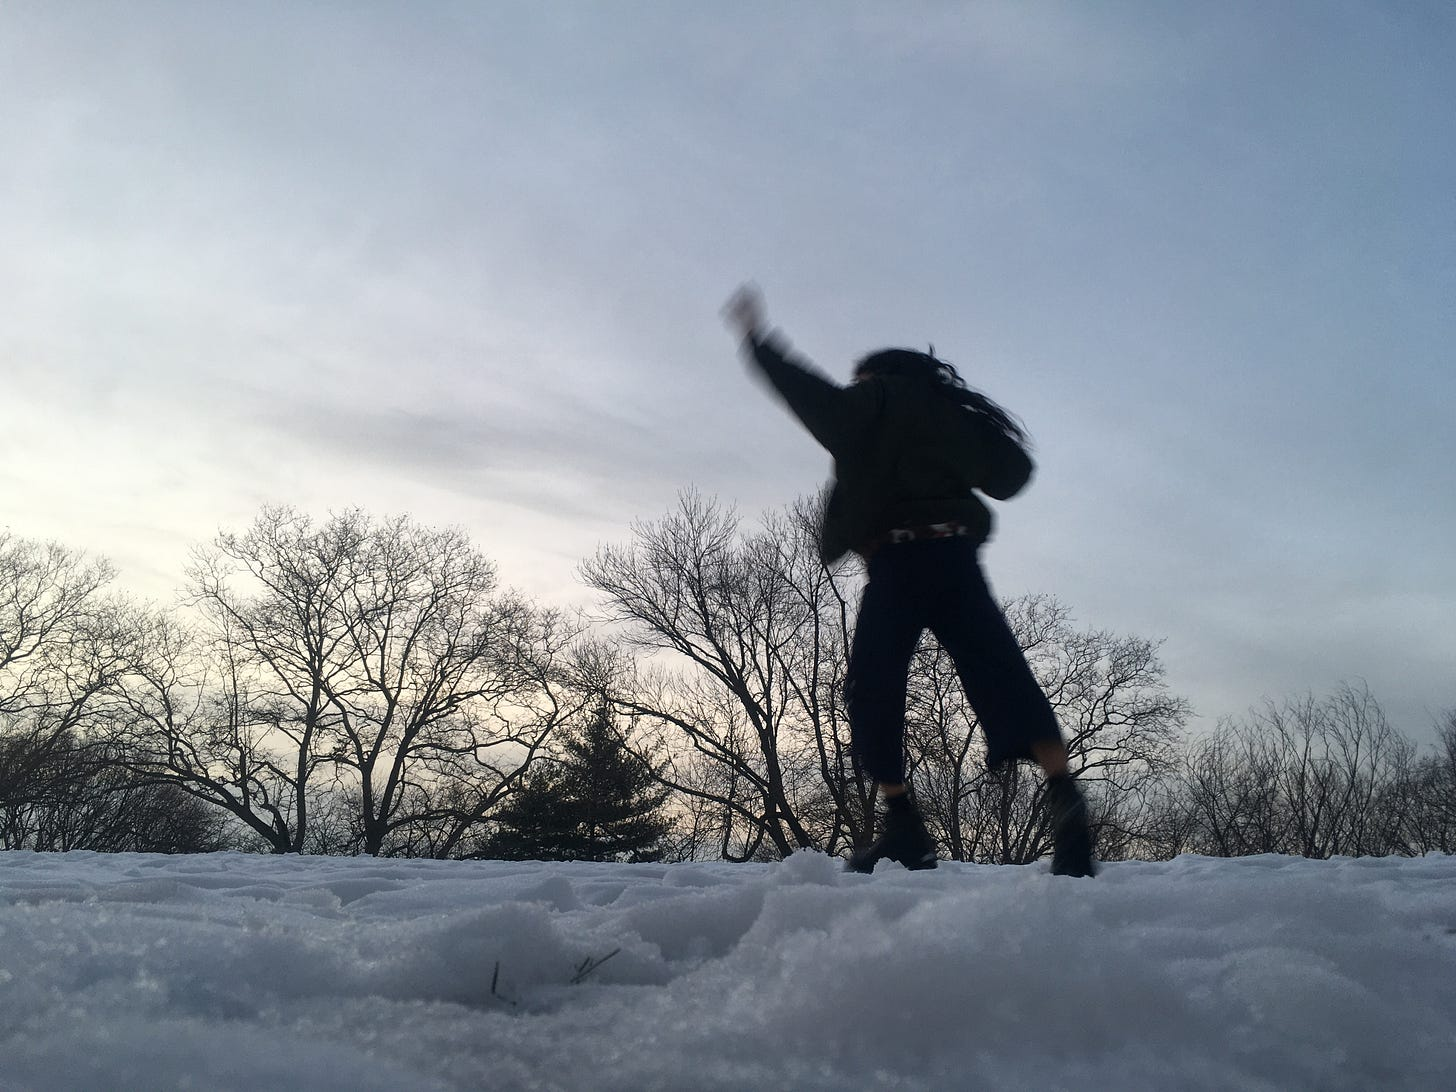 photo by me:  me keeping my weight above the ground covered in snow, left leg slightly bent, left arm raised, with bare trees in the background